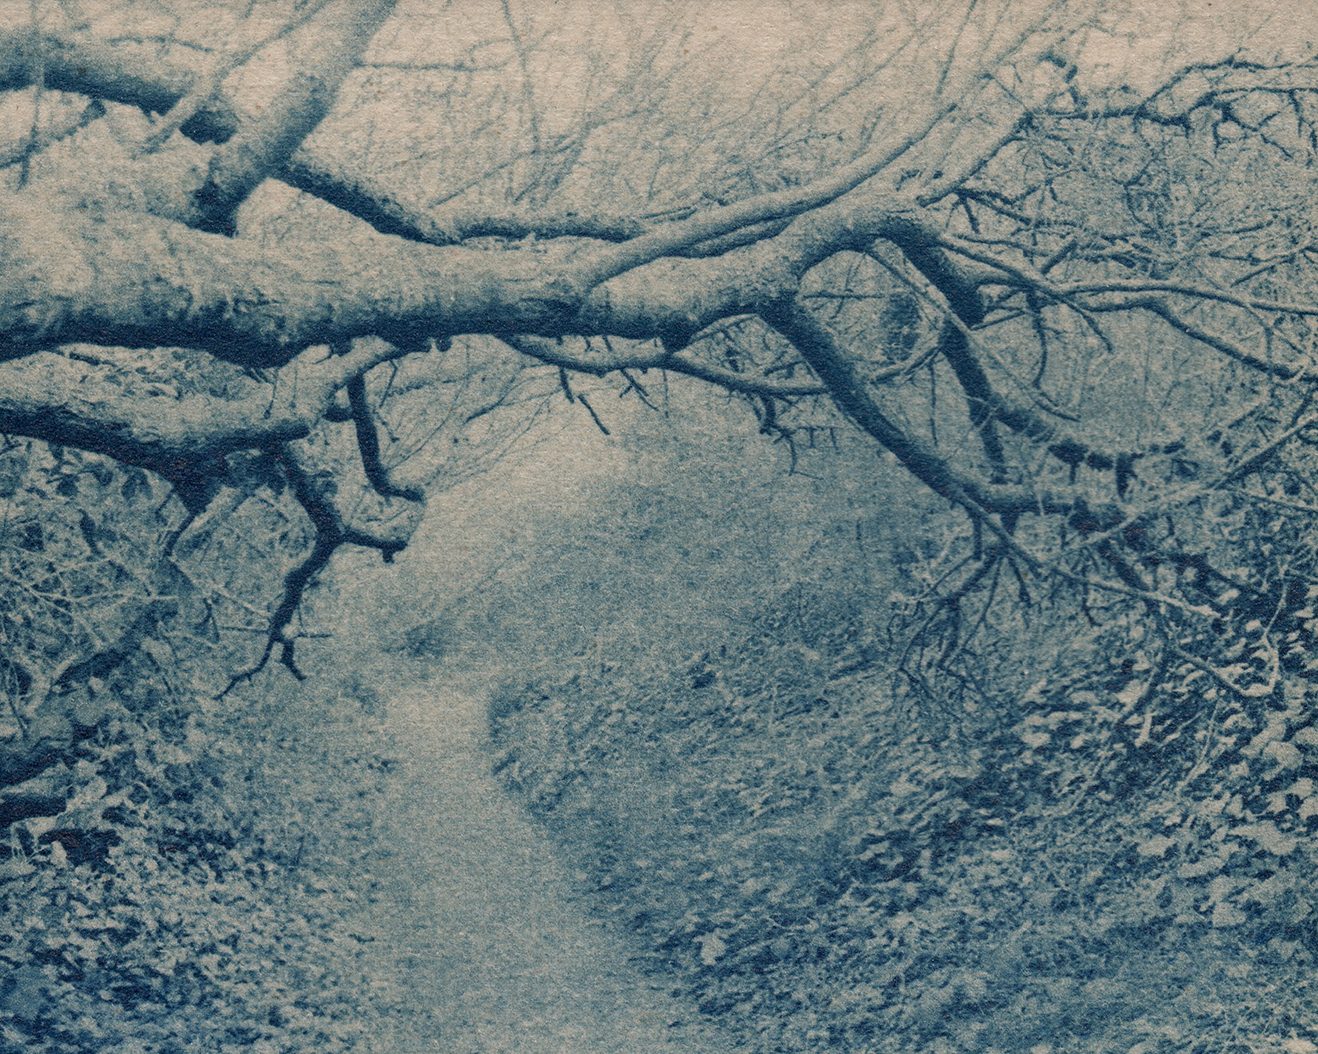 Gum bichromate over cyanotype